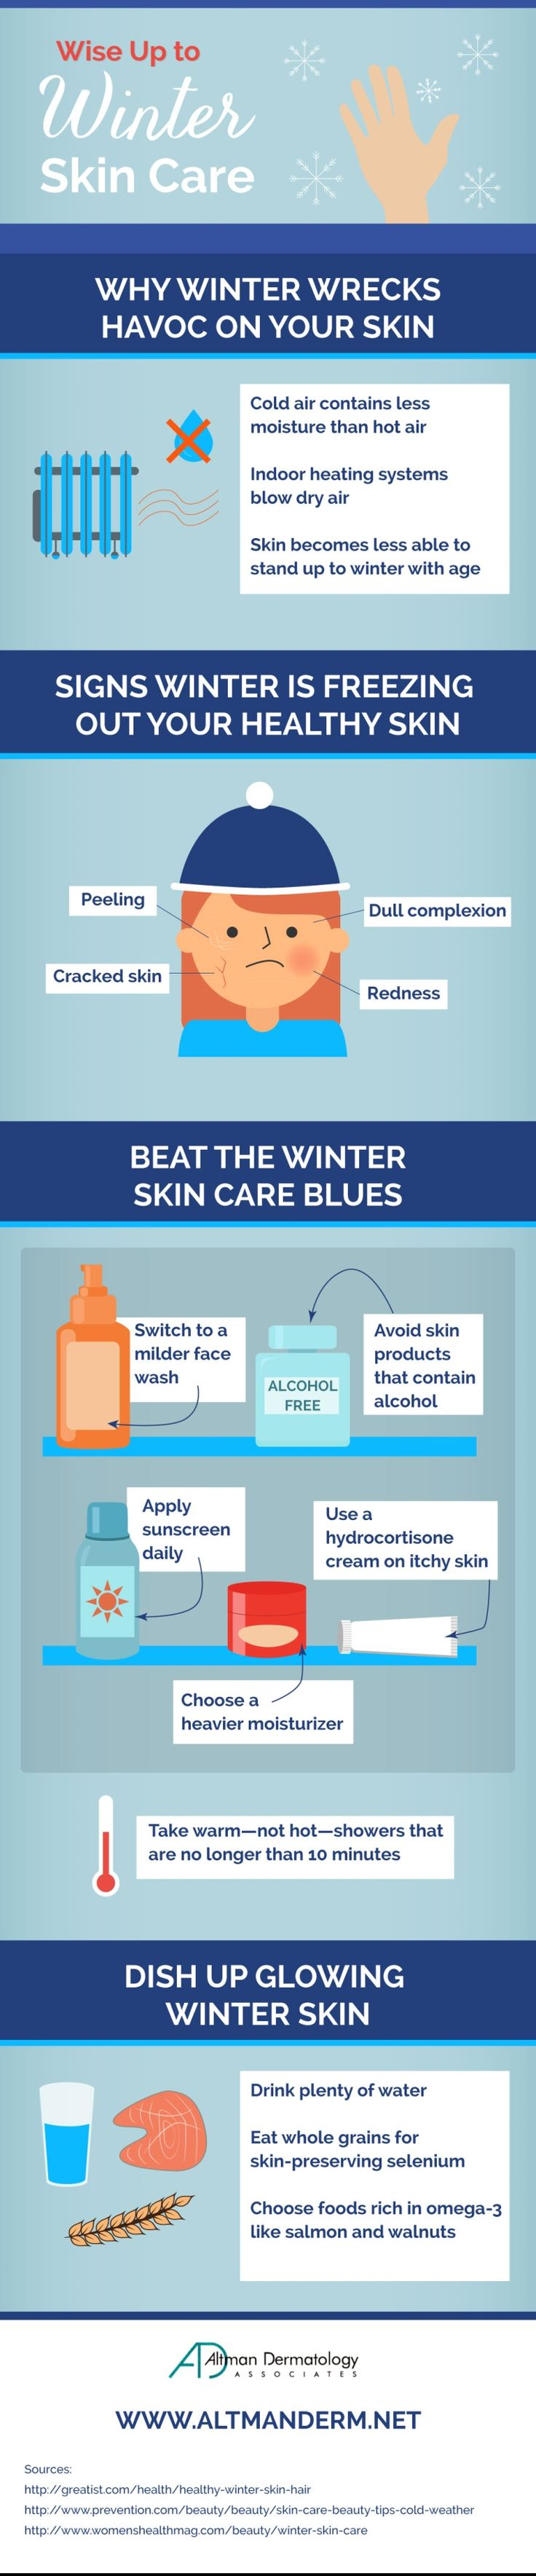 Winter Season Skin Care Tips